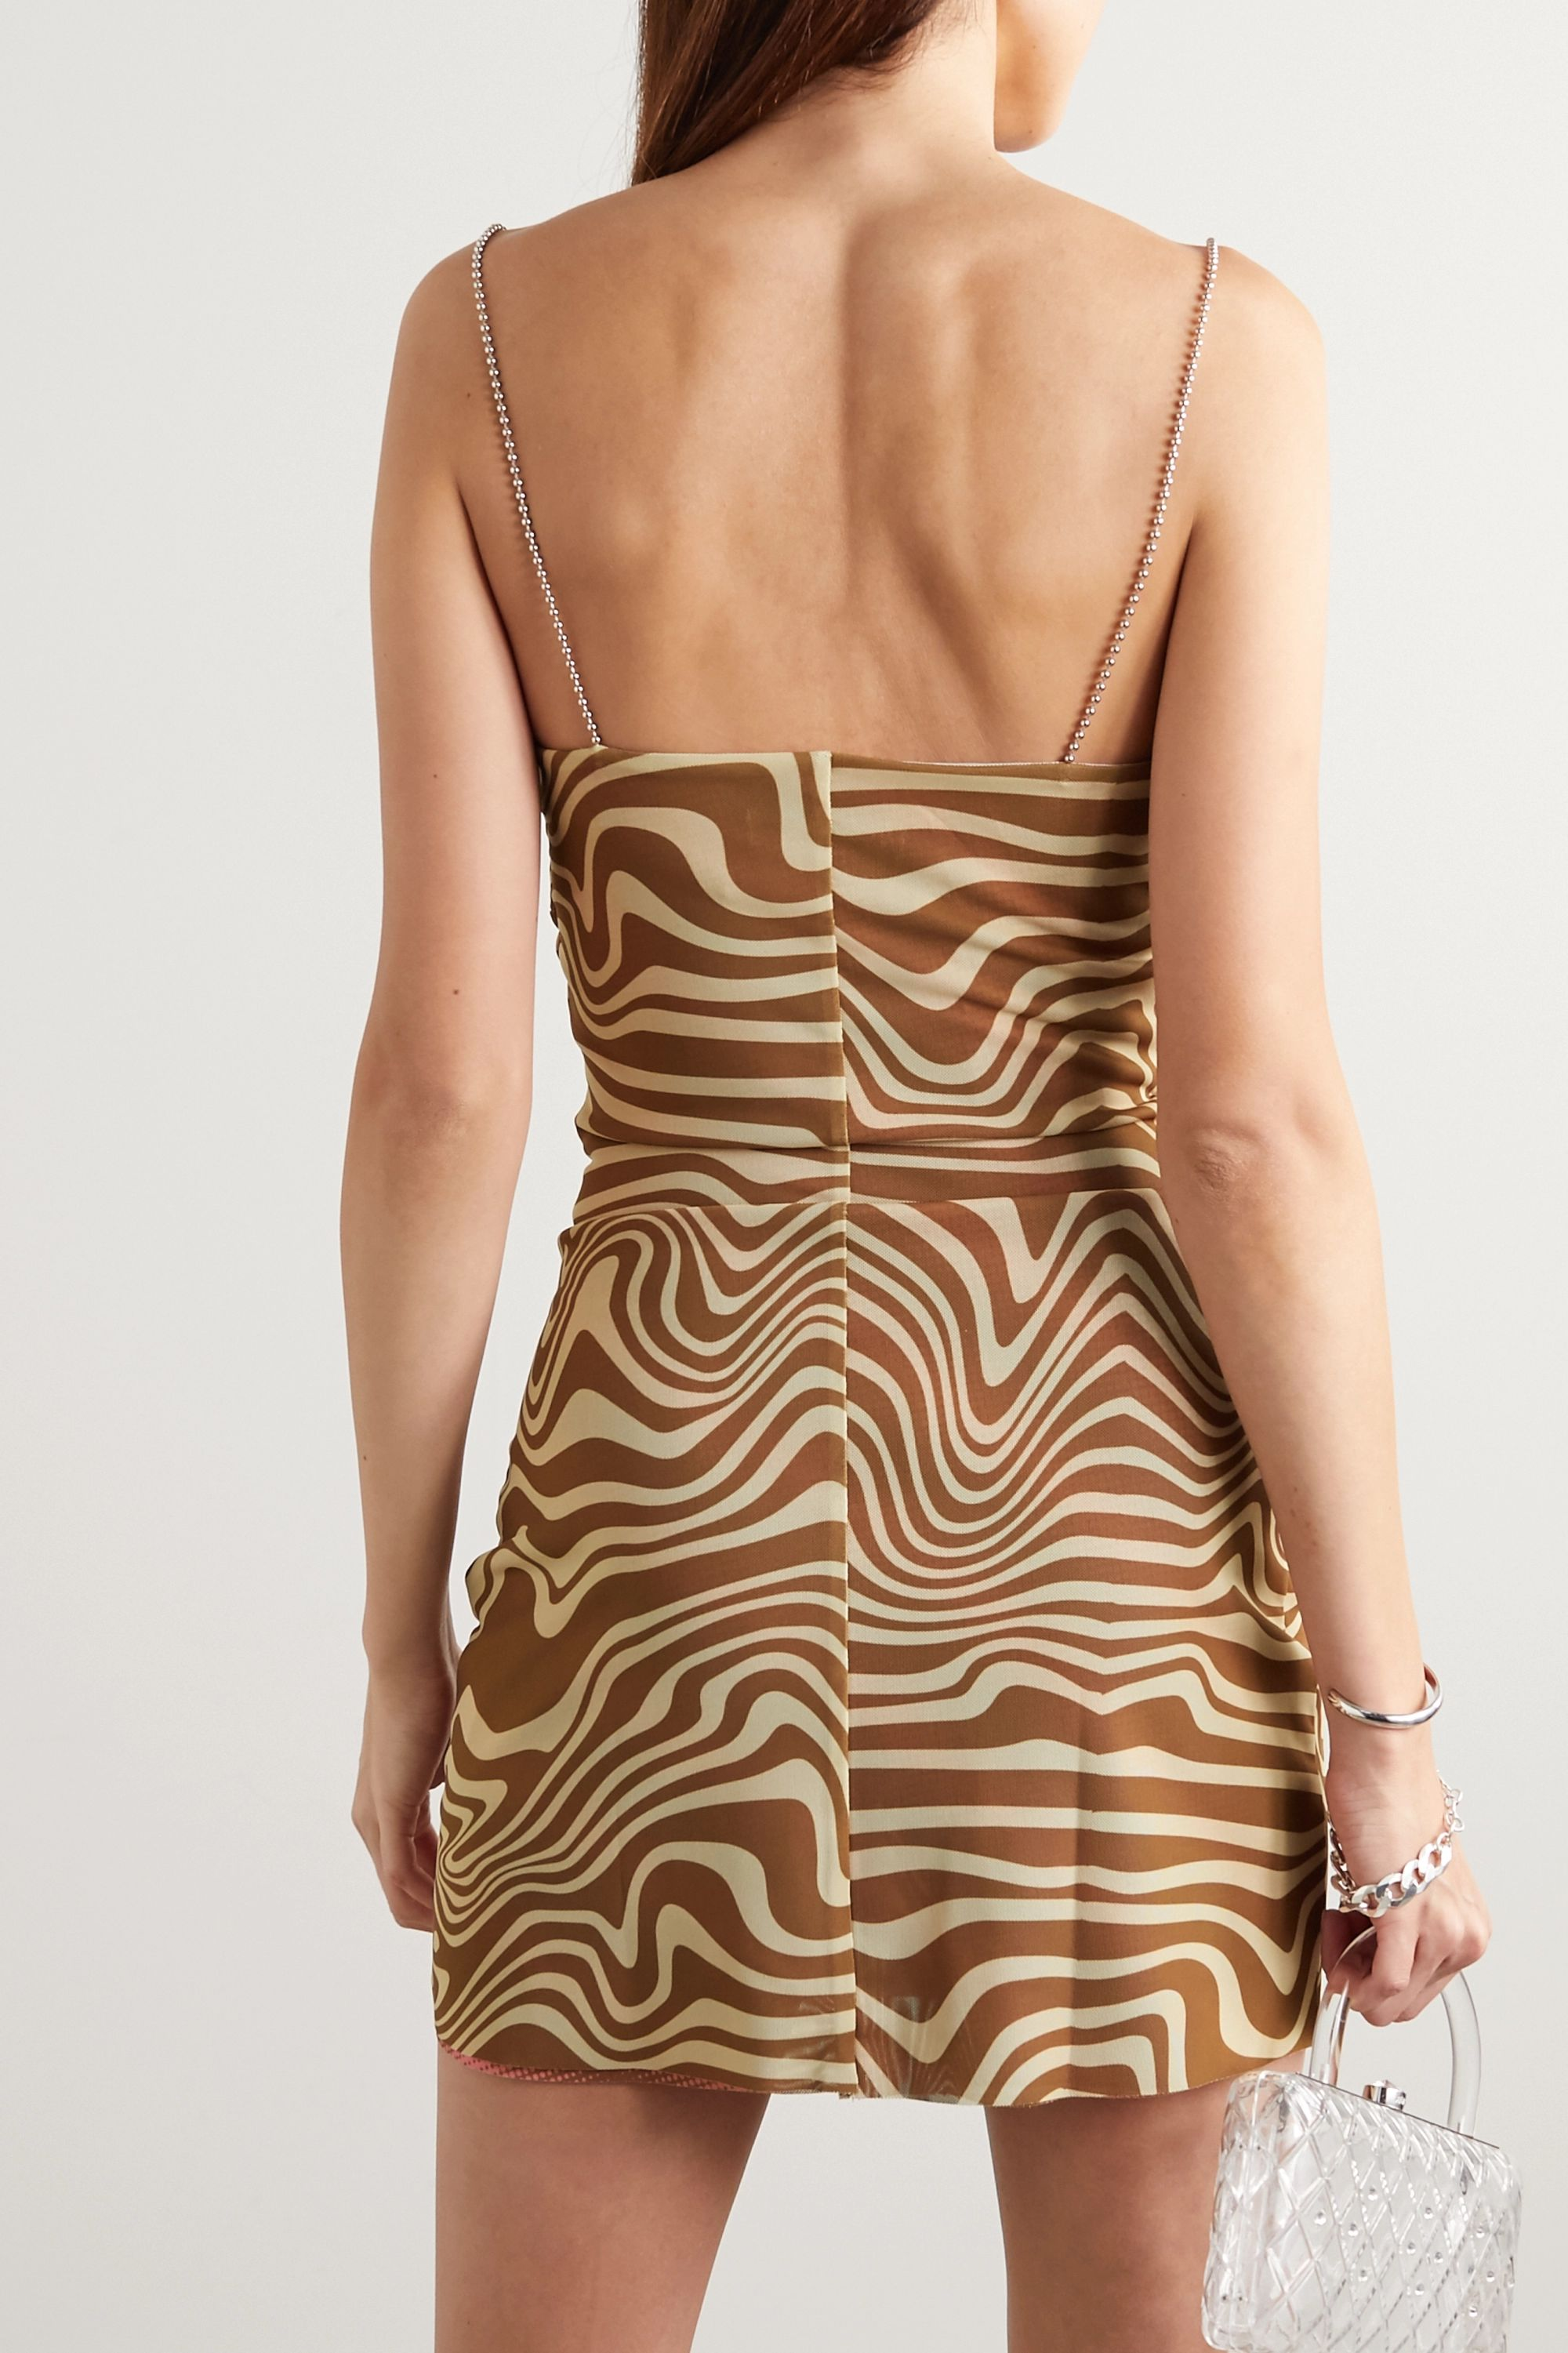 Maisie Wilen Bead-embellished ruched printed stretch-jersey mini dress